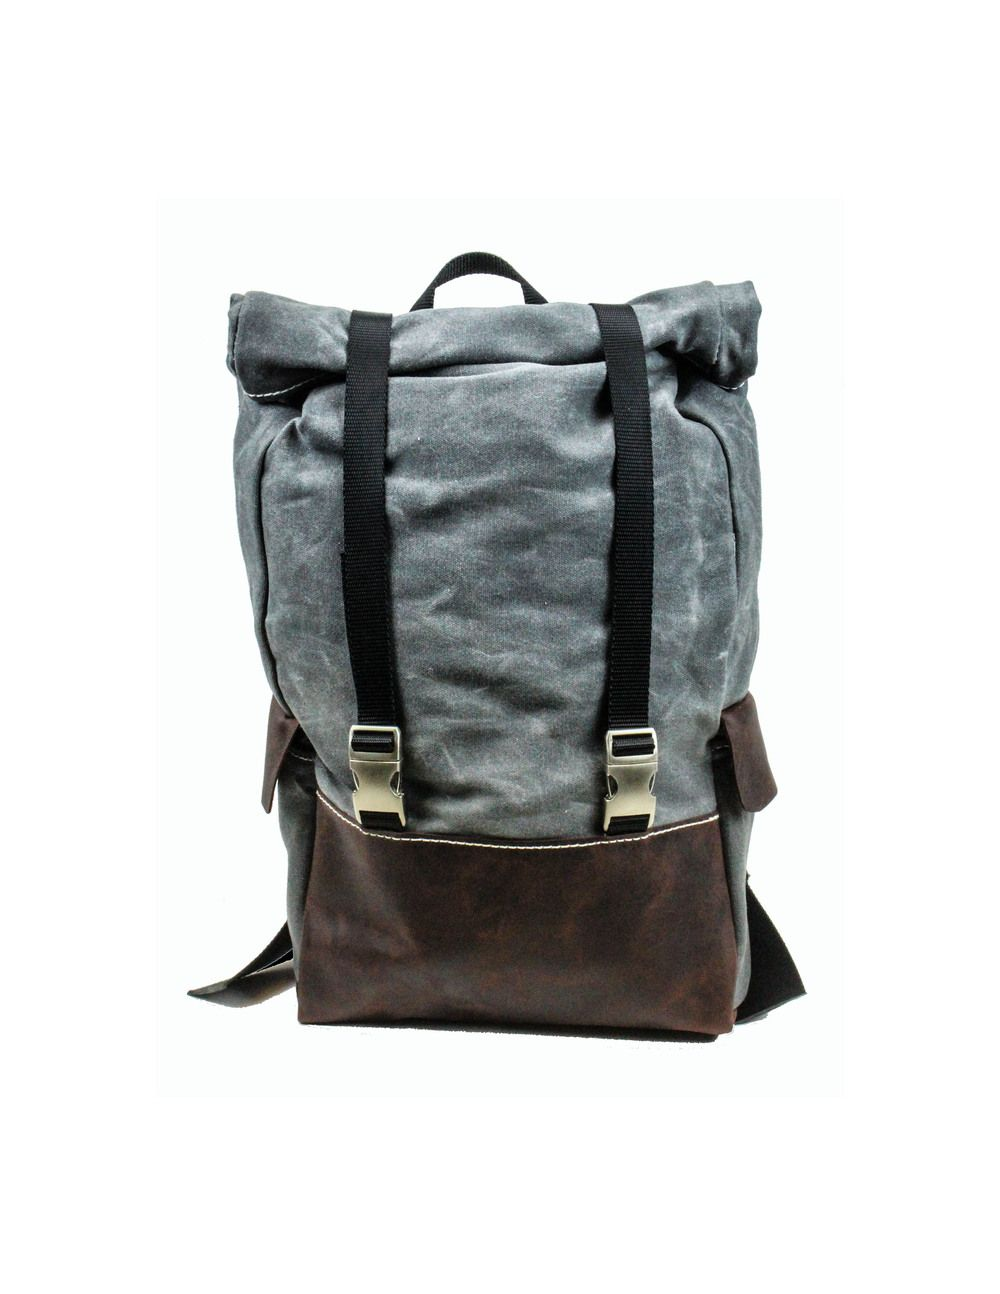 05199112560f0 This Backpack is indestructible. Made from waterproof 18oz Waxed Canvas